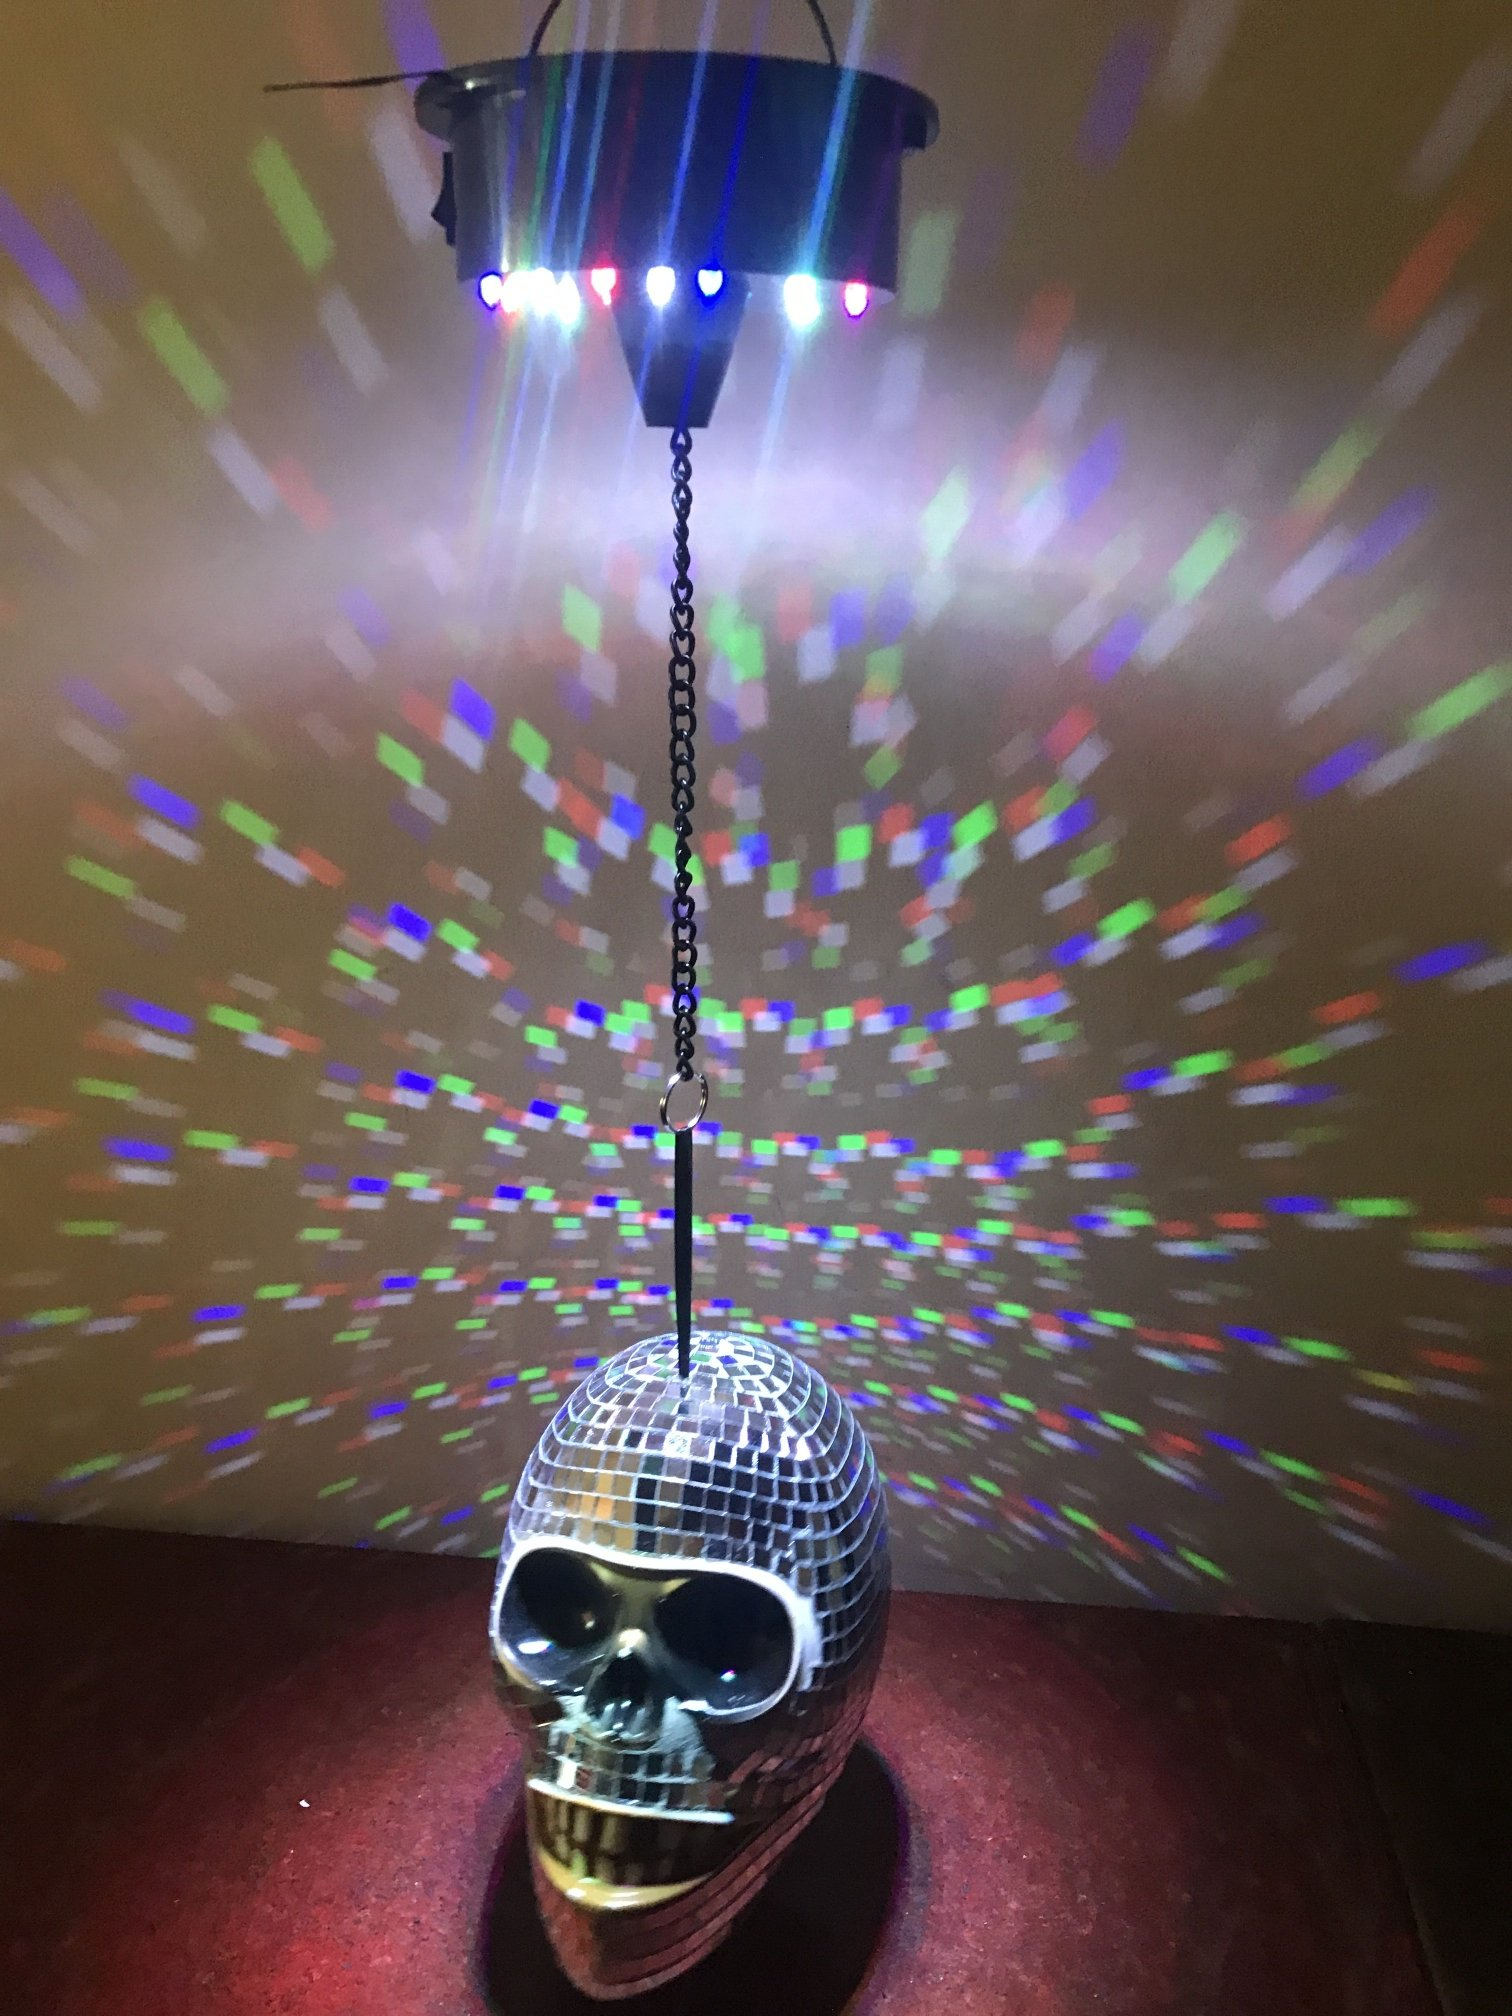 Lightahead Battery Operated Mirror Skull Disco Light with Sound Sensor for DJ Party Halloween Decorations by Lightahead (Image #2)